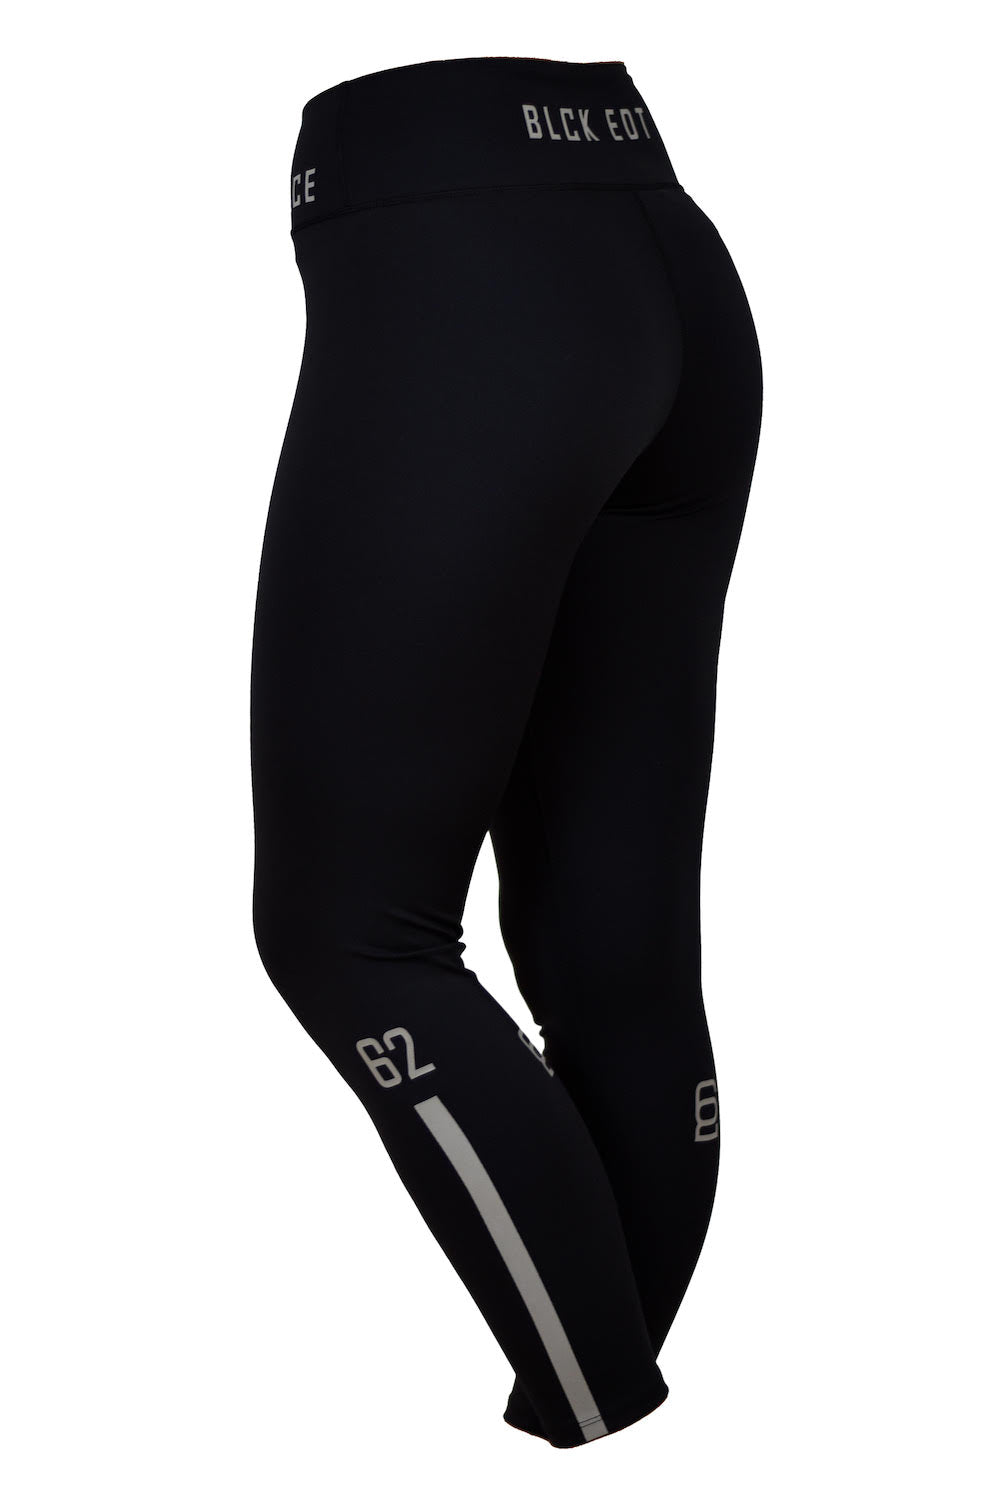 SIX DEUCE LIMITED BLACK EDITION LEGGINGS